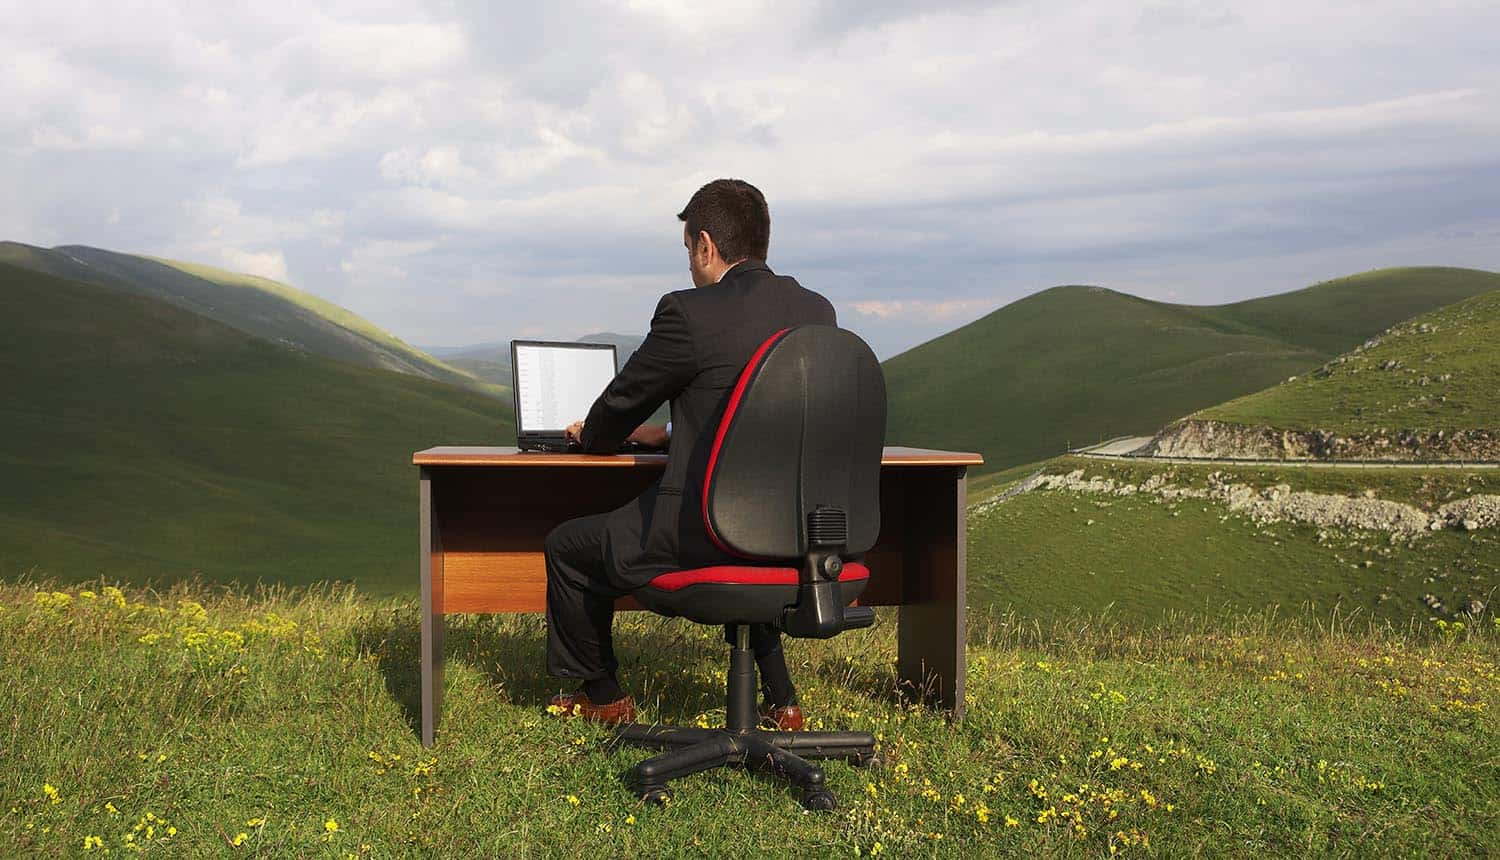 Man using laptop at desk in mountain field showing how you can minimize the cyber security risks of remote working